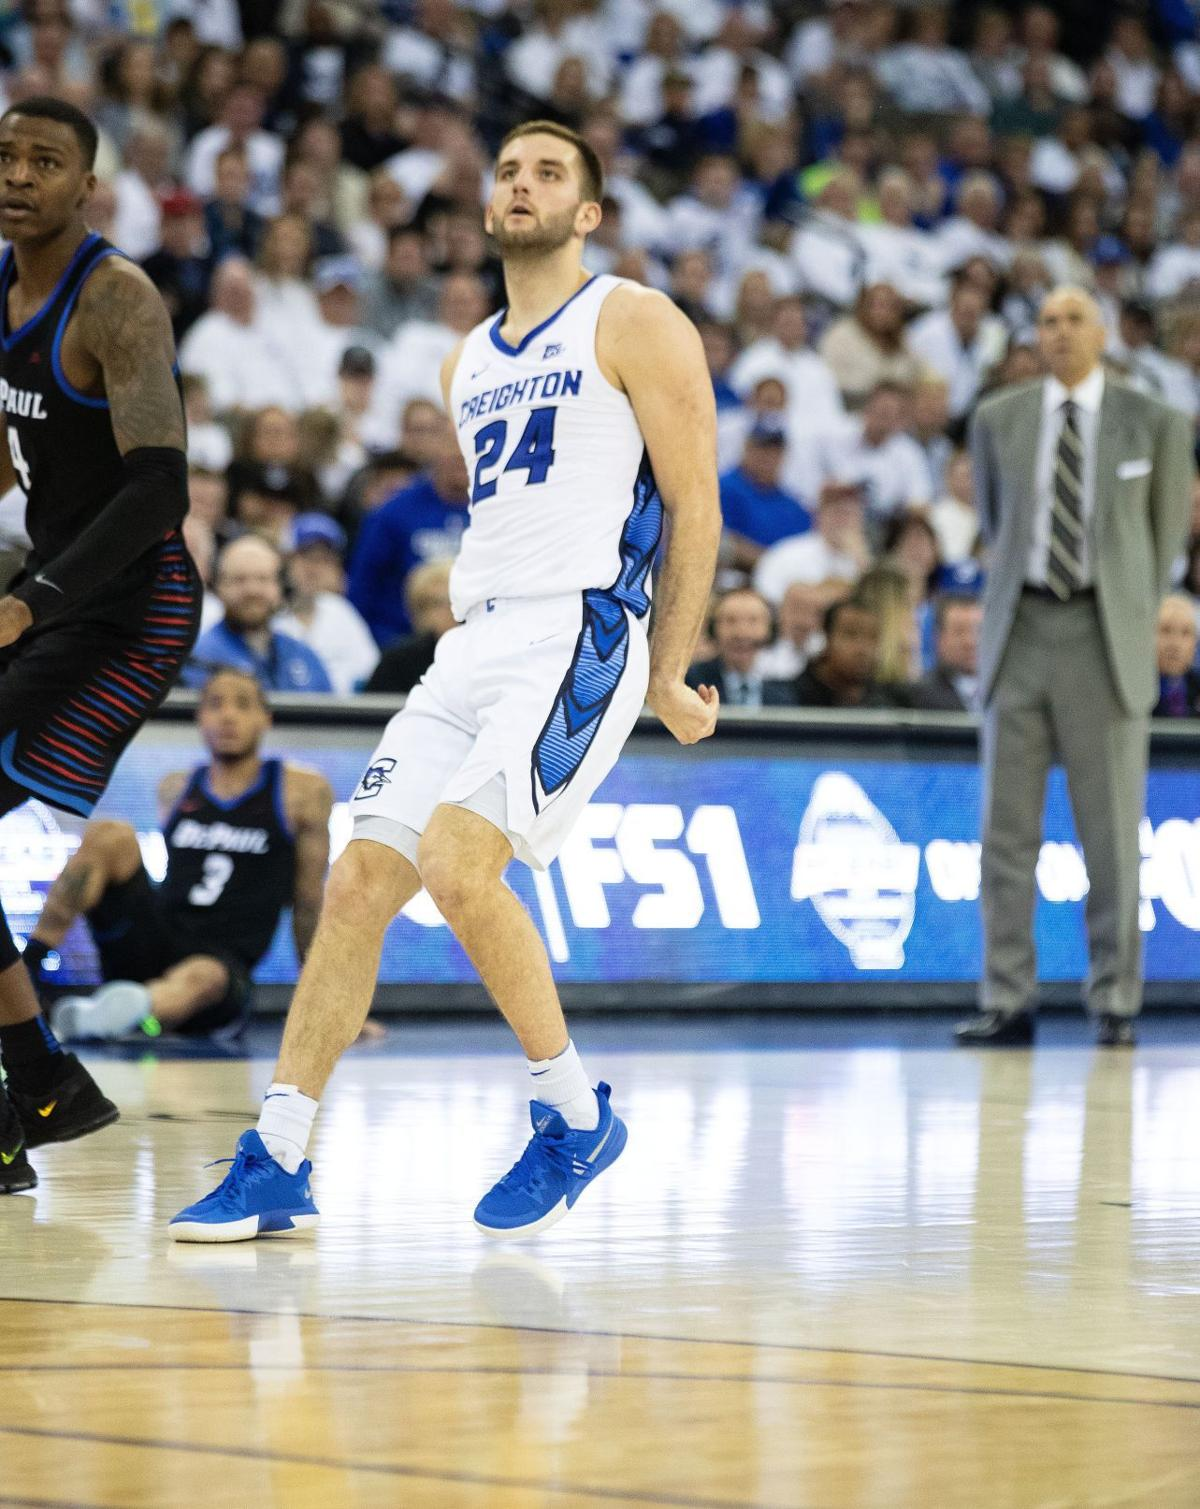 809597e8a254 Mitch Ballock breaks school record with 11 3-pointers as Creighton holds  off DePaul